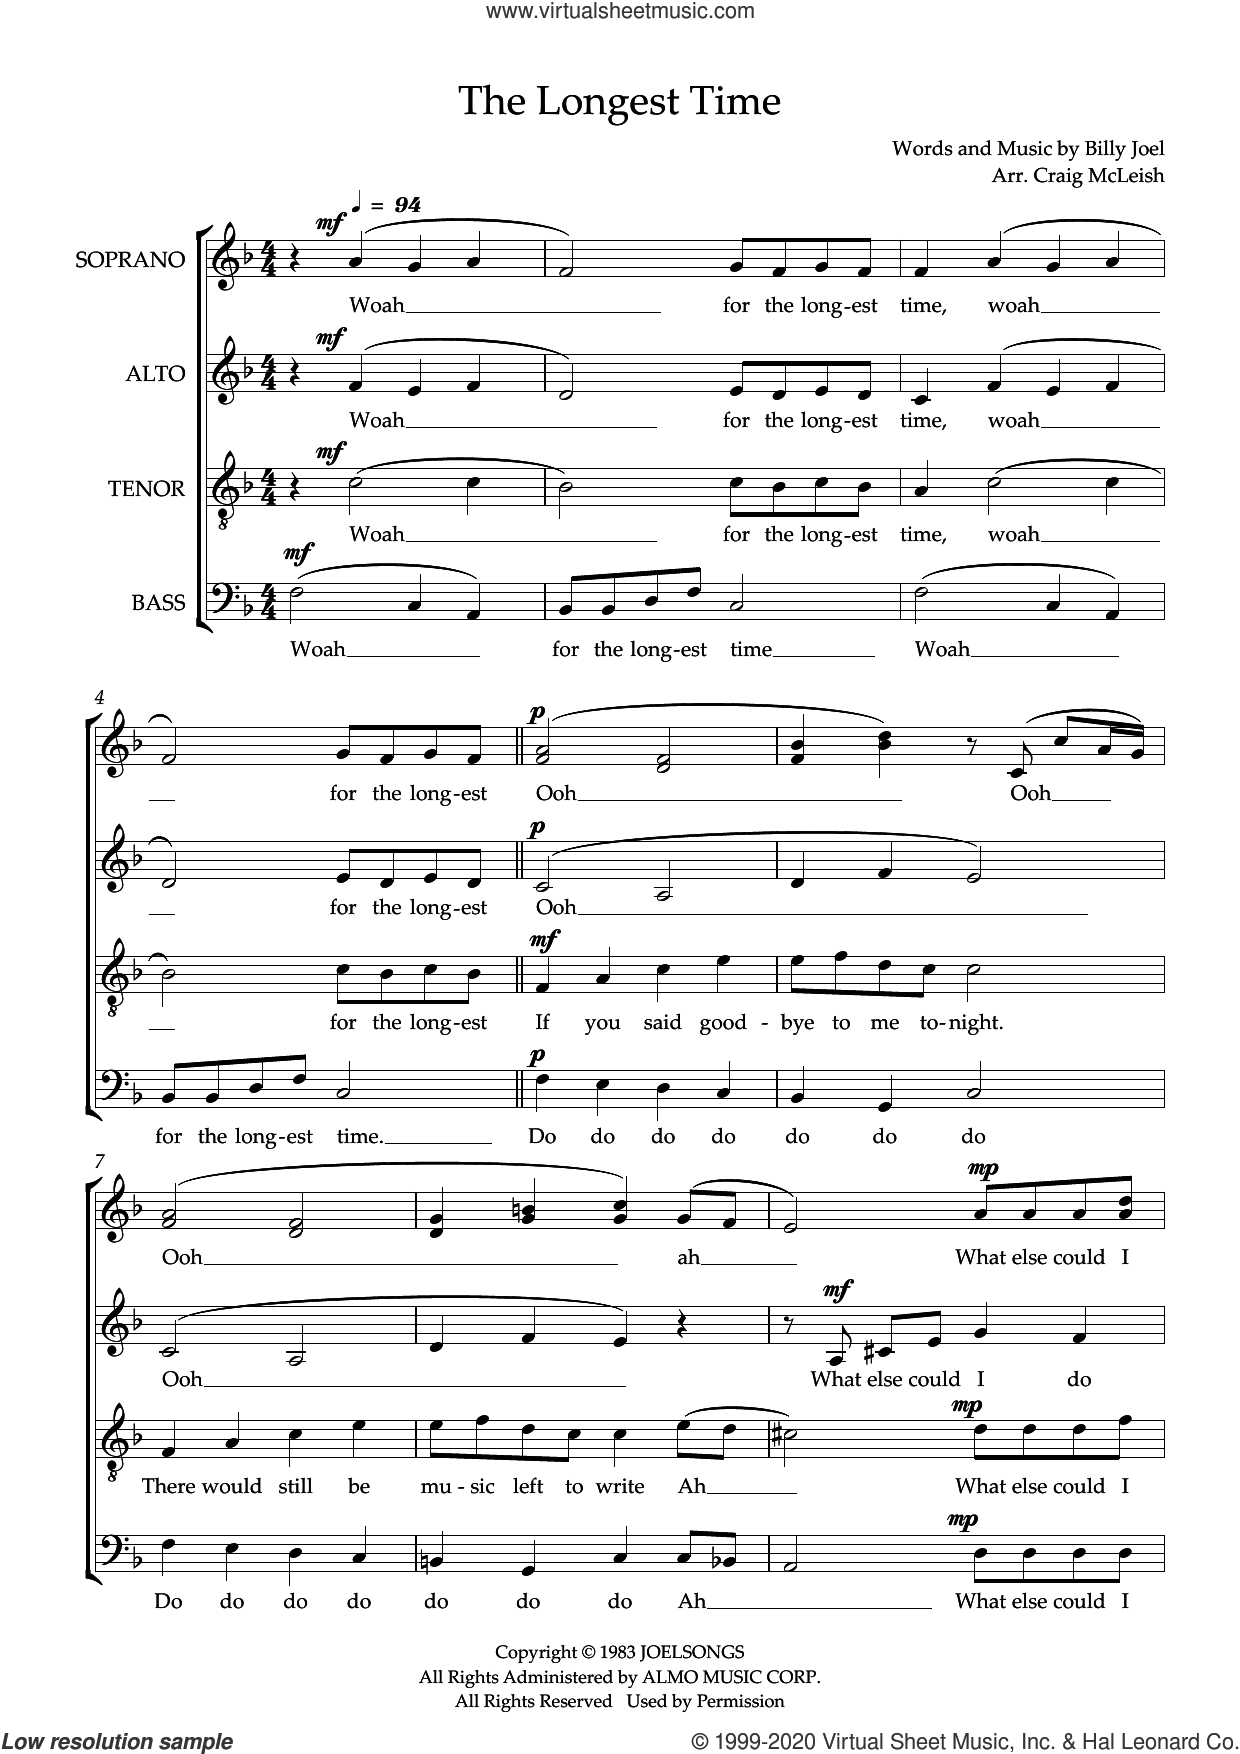 The Longest Time (arr. Craig McLeish) sheet music for choir (SSATB) by Billy Joel and Craig McLeish, intermediate skill level